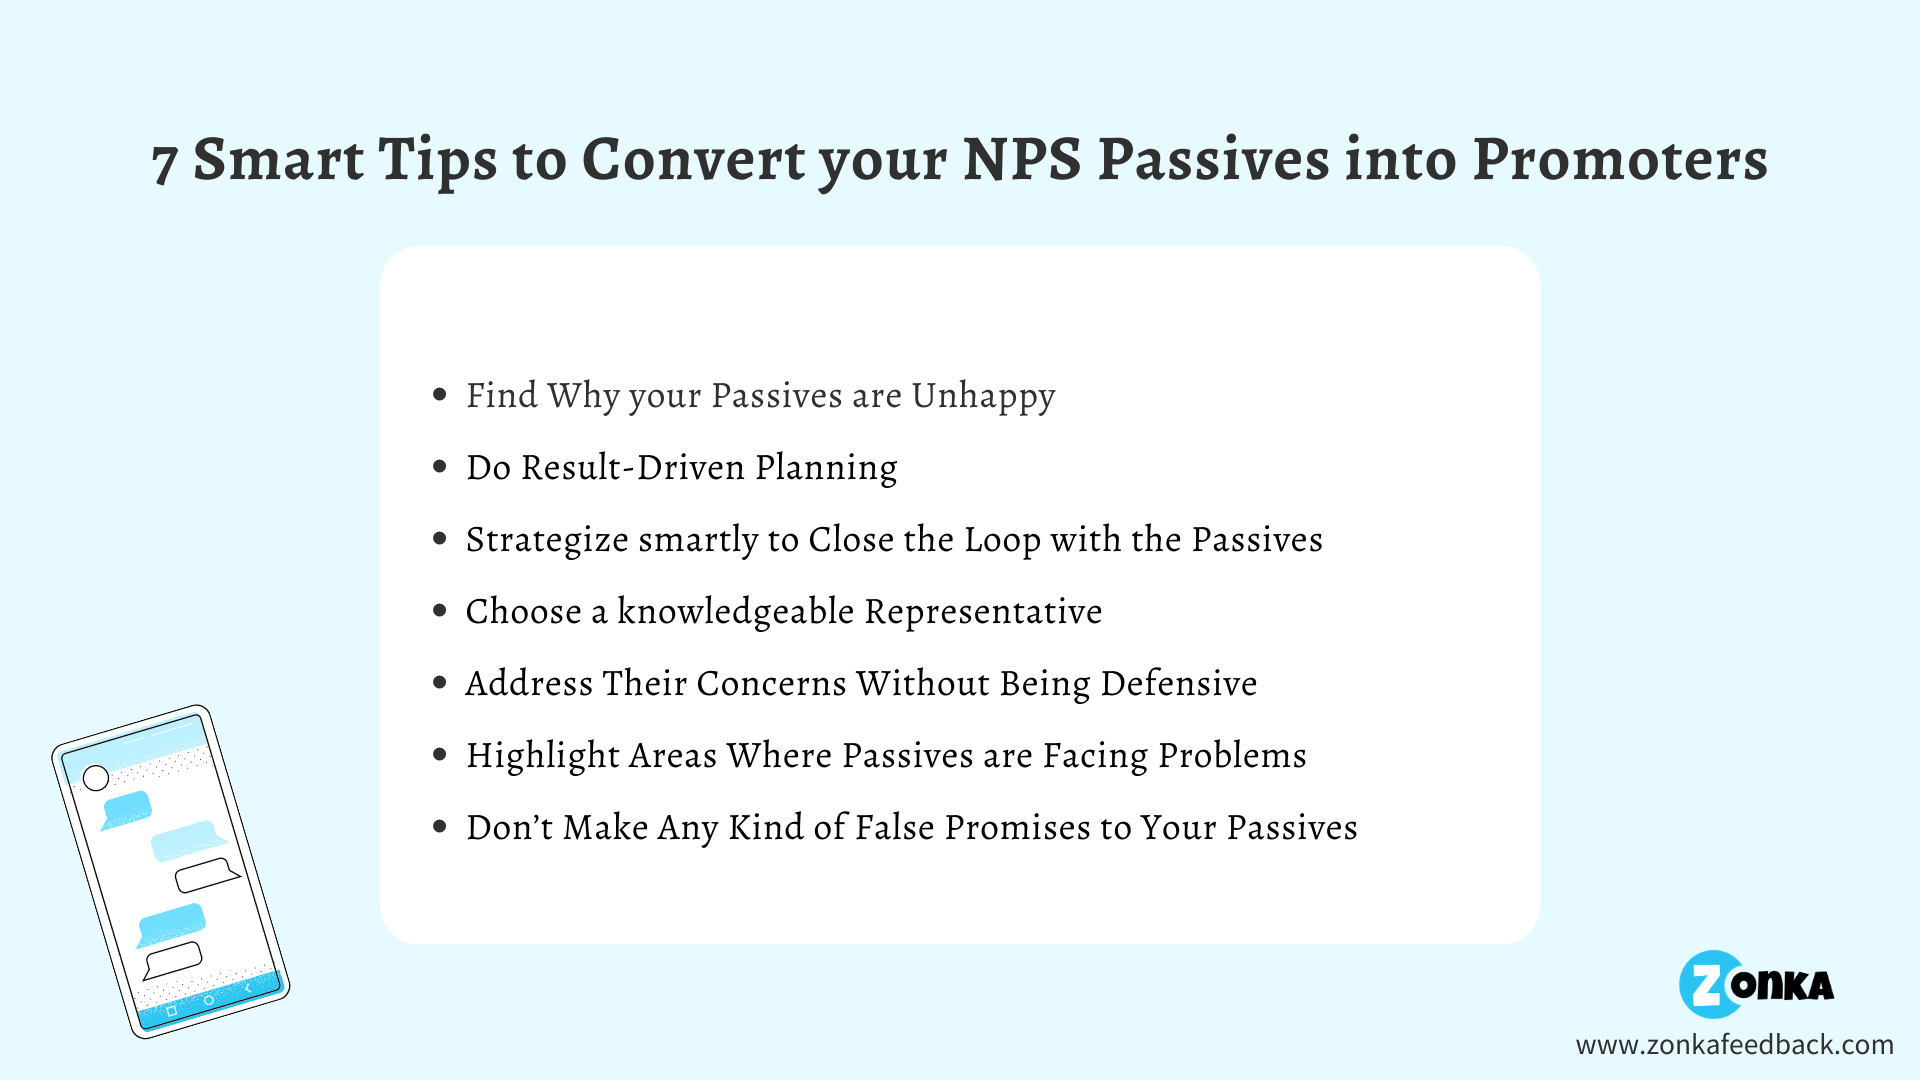 Tips to Convert your NPS Passives into Promoters